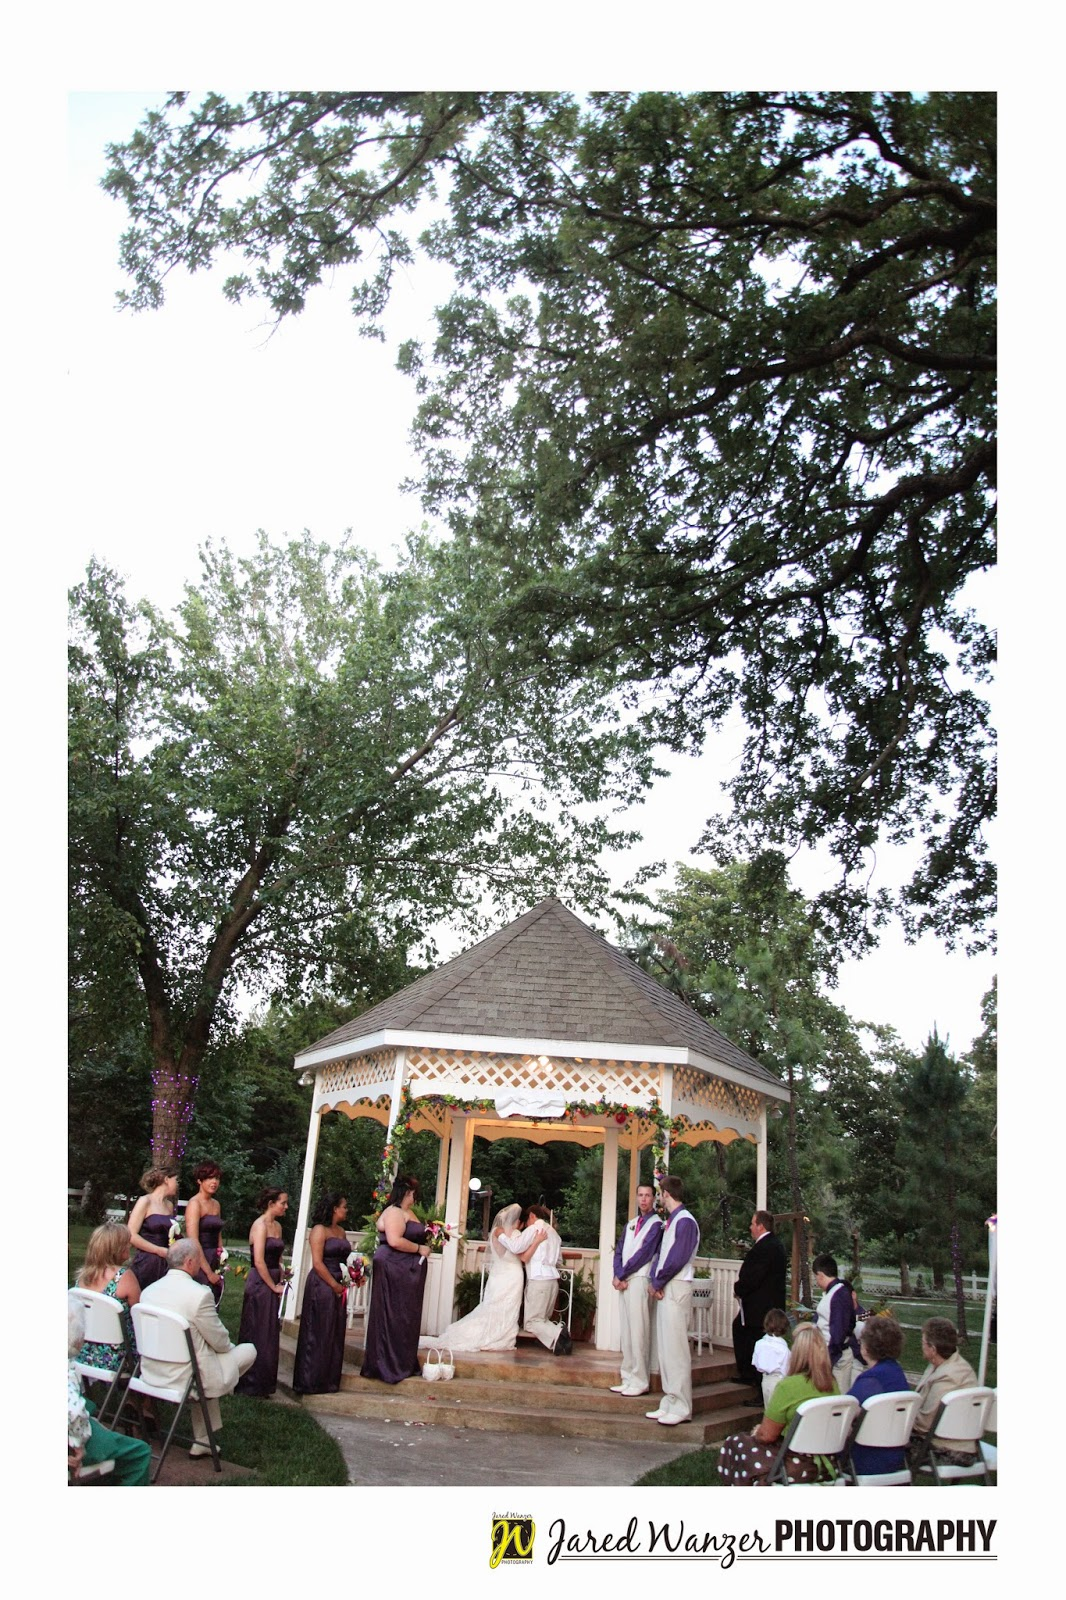 All Of These Images Were Taken At I Cross My Heart Wedding Chapel Their Gorgeous Gardens